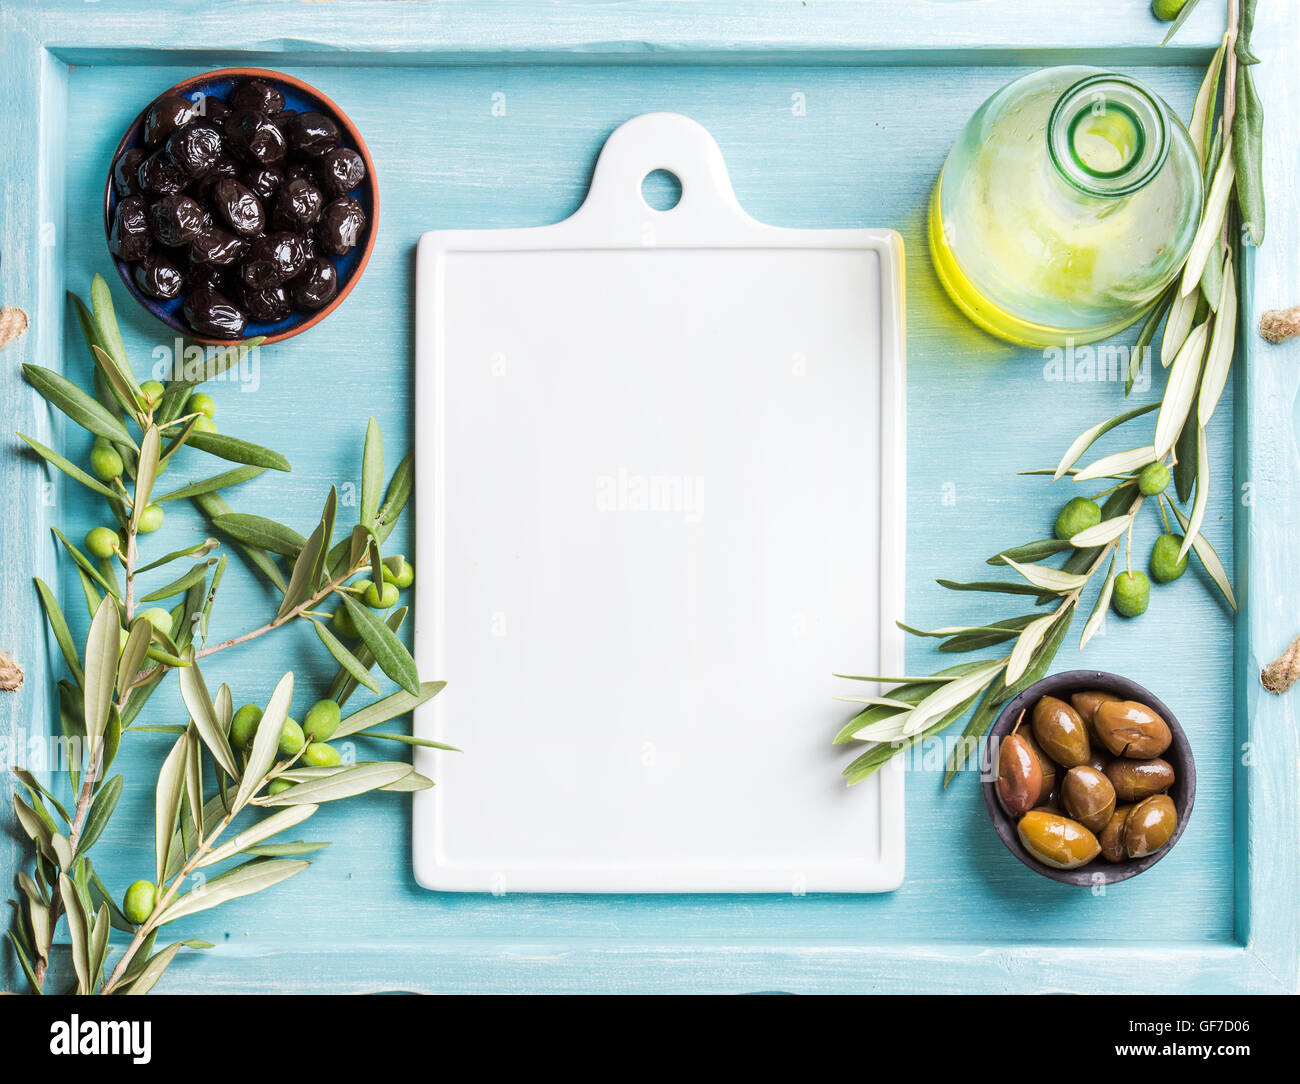 Two bowls with pickled green and black olives, olive tree sprigs, oil, white ceramic board in center. Copy space. - Stock Image